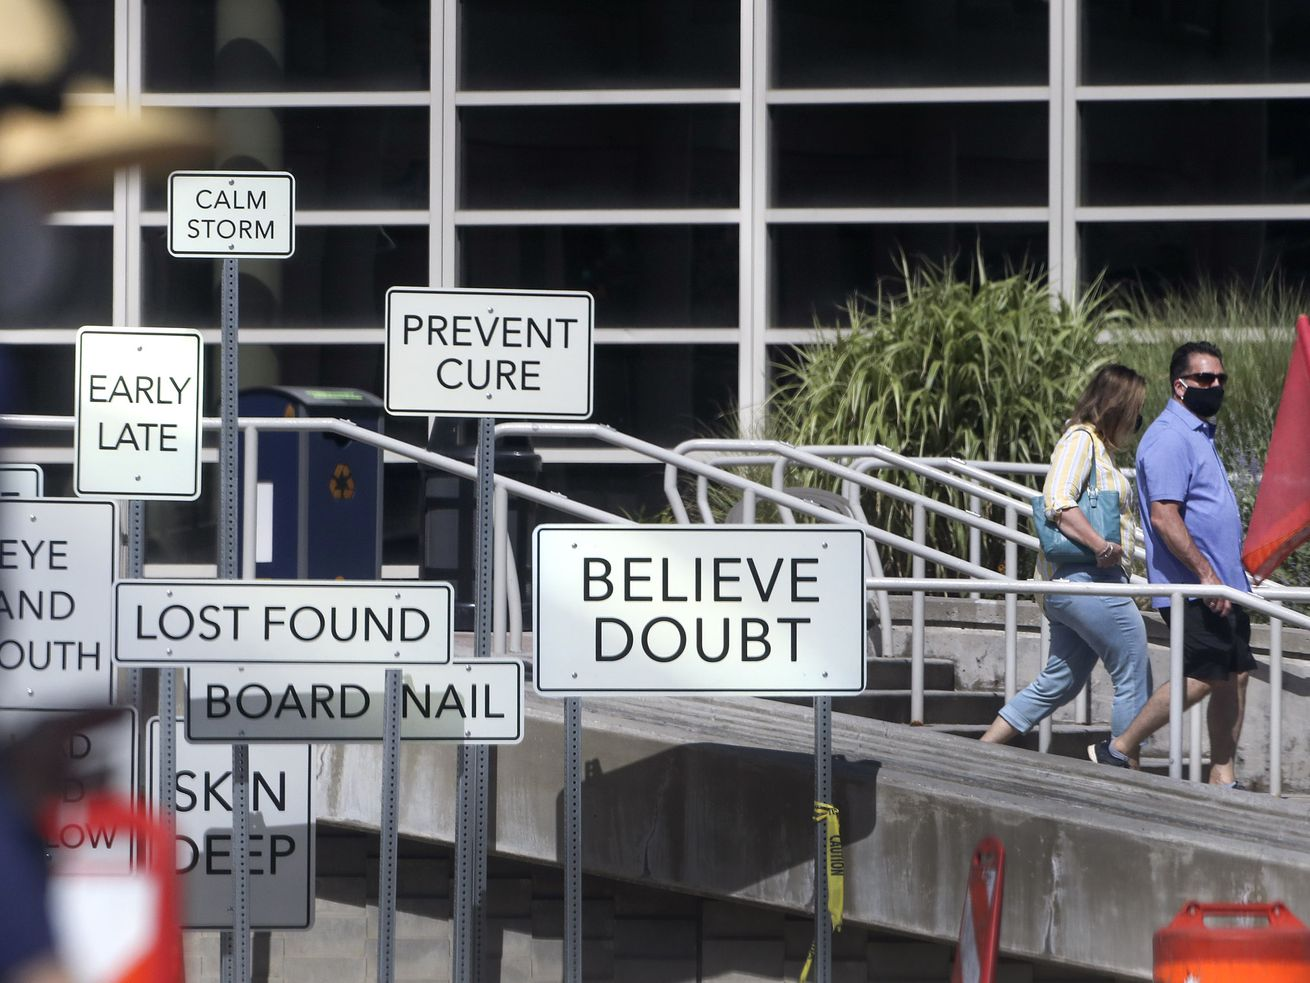 "Pedestrians wear masks as they walk past the ""Point of View"" art installation in front of the Salt Palace Convention Center in Salt Lake City on Monday, July 27, 2020. The installation, at West Temple and 100 South, was created by Maine artist Aaron T Stephan and features over 150 road signs with diametrical words on them."